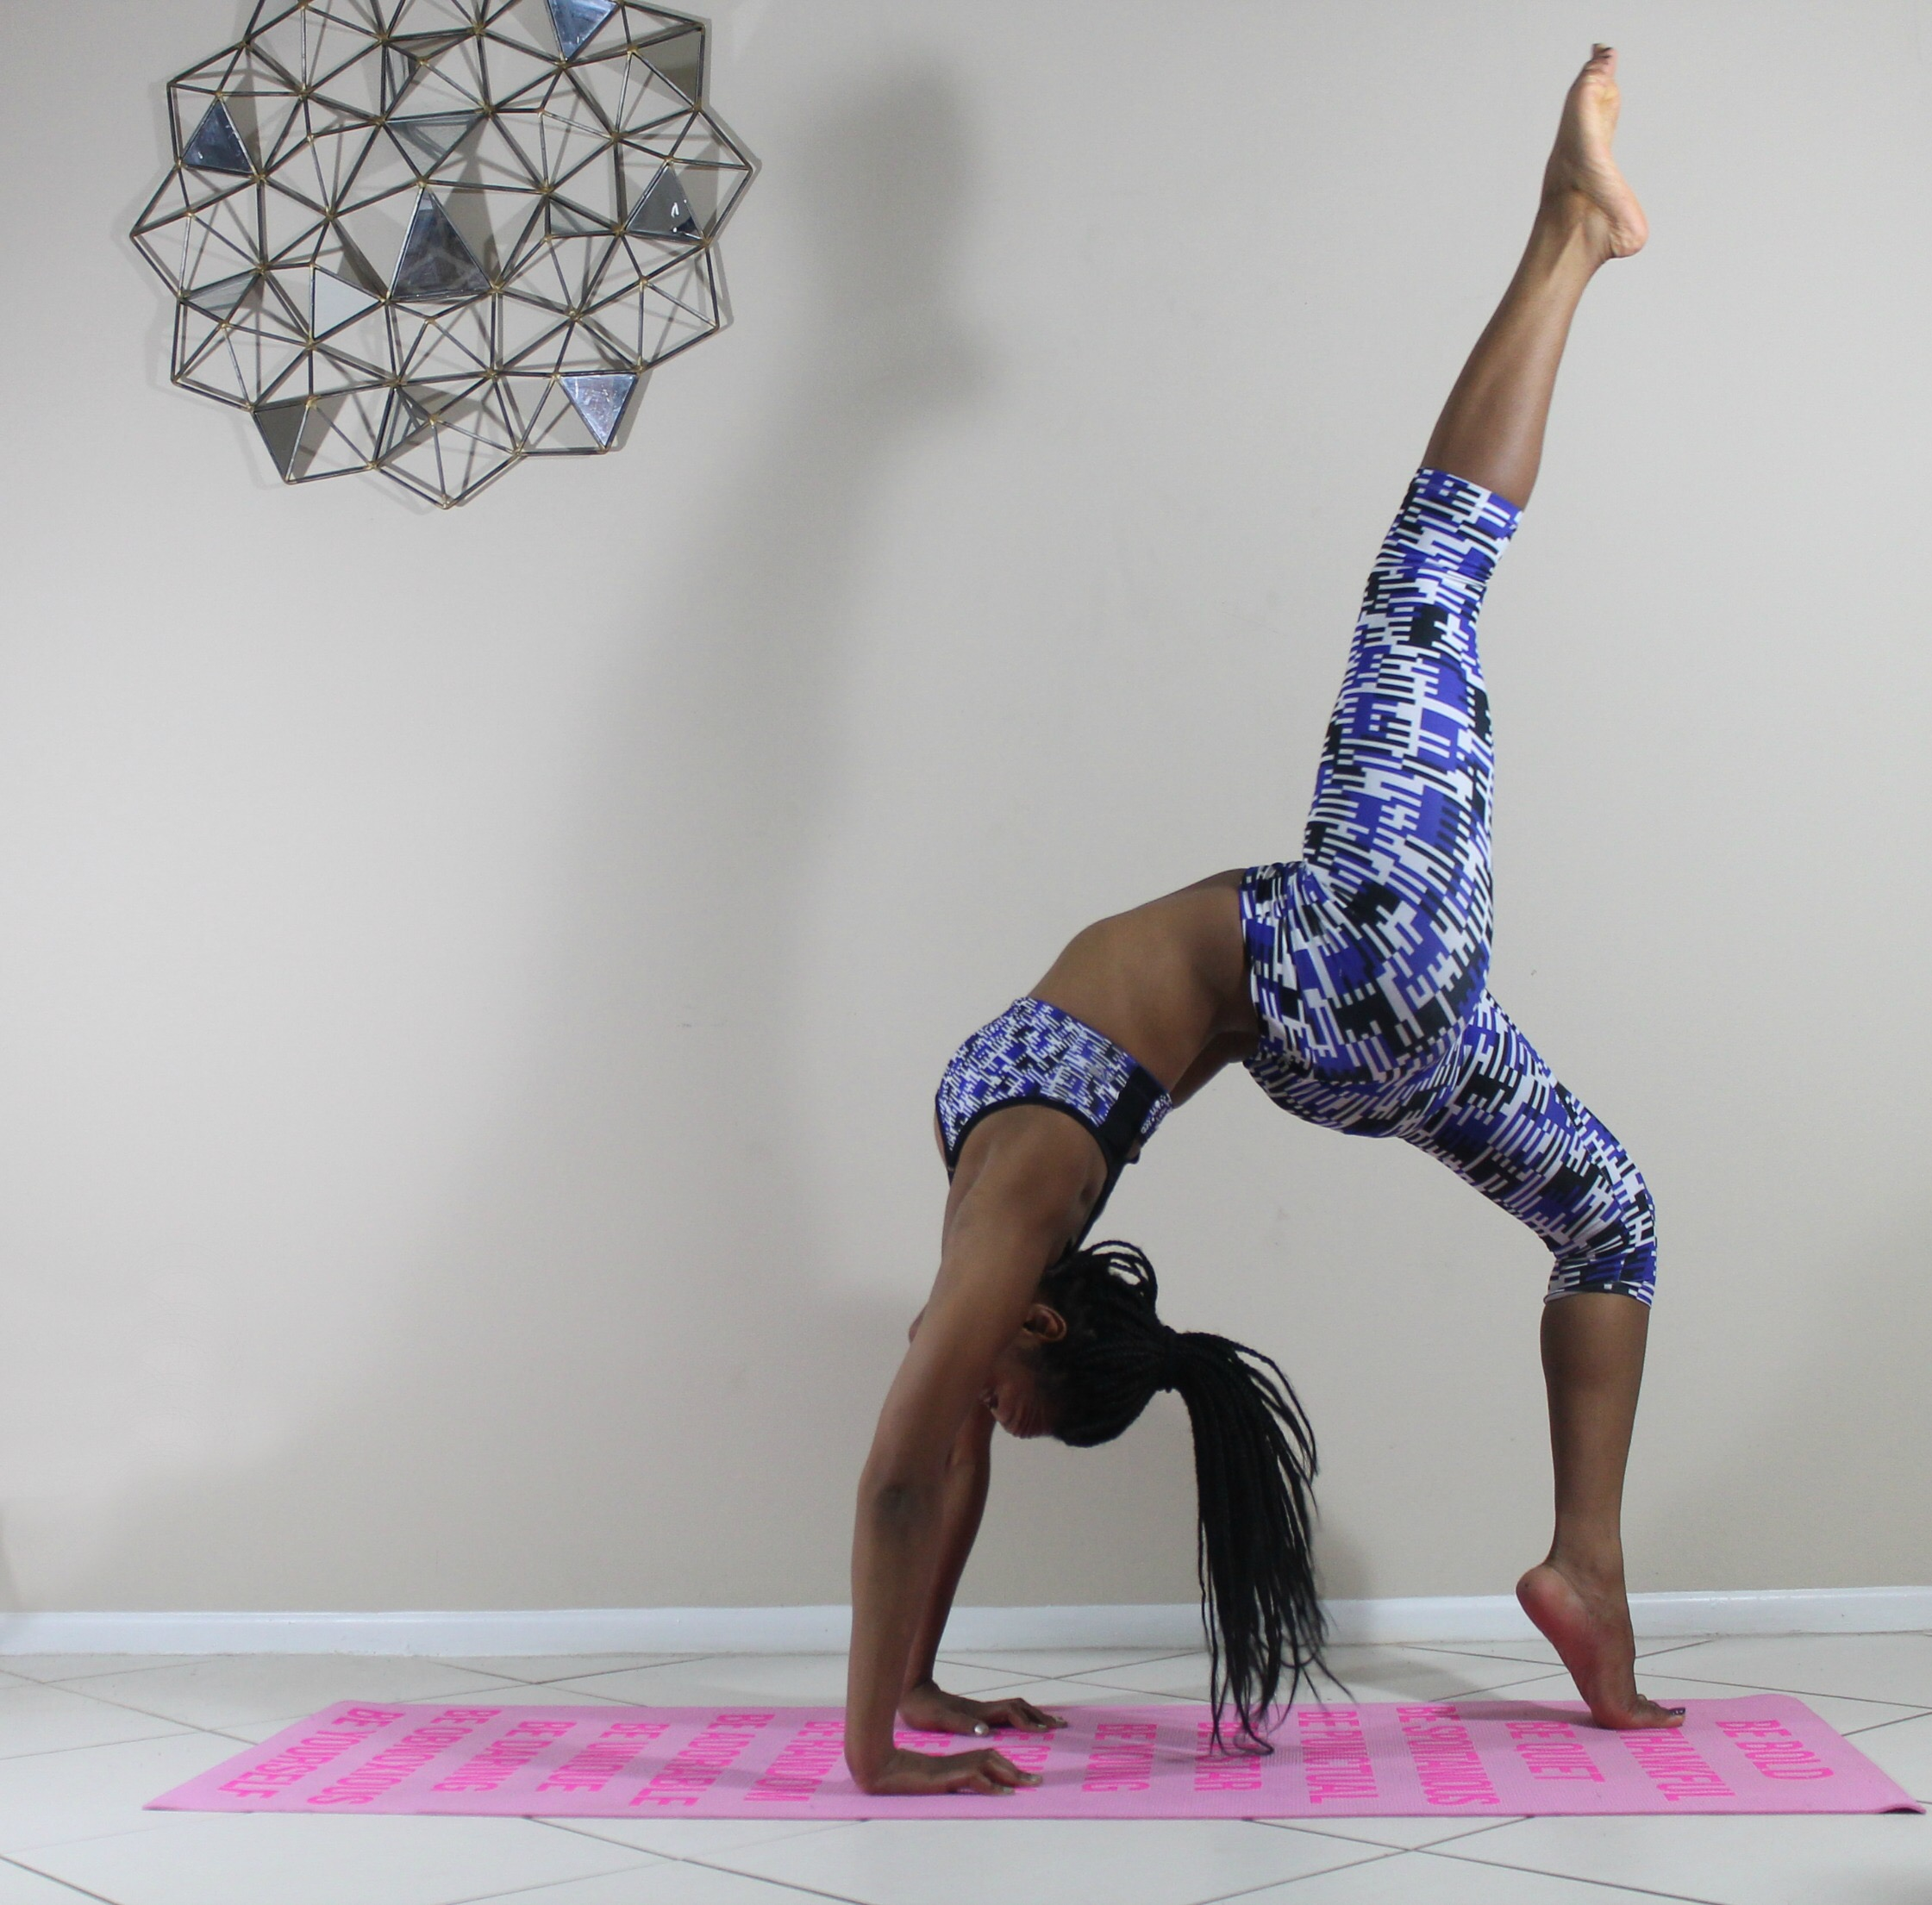 handstand-asana-inversion-pose-asana-black-girl-yoga-5-tips-for-beginner-yoga-free-resources-beauty-and-the-beat-blog